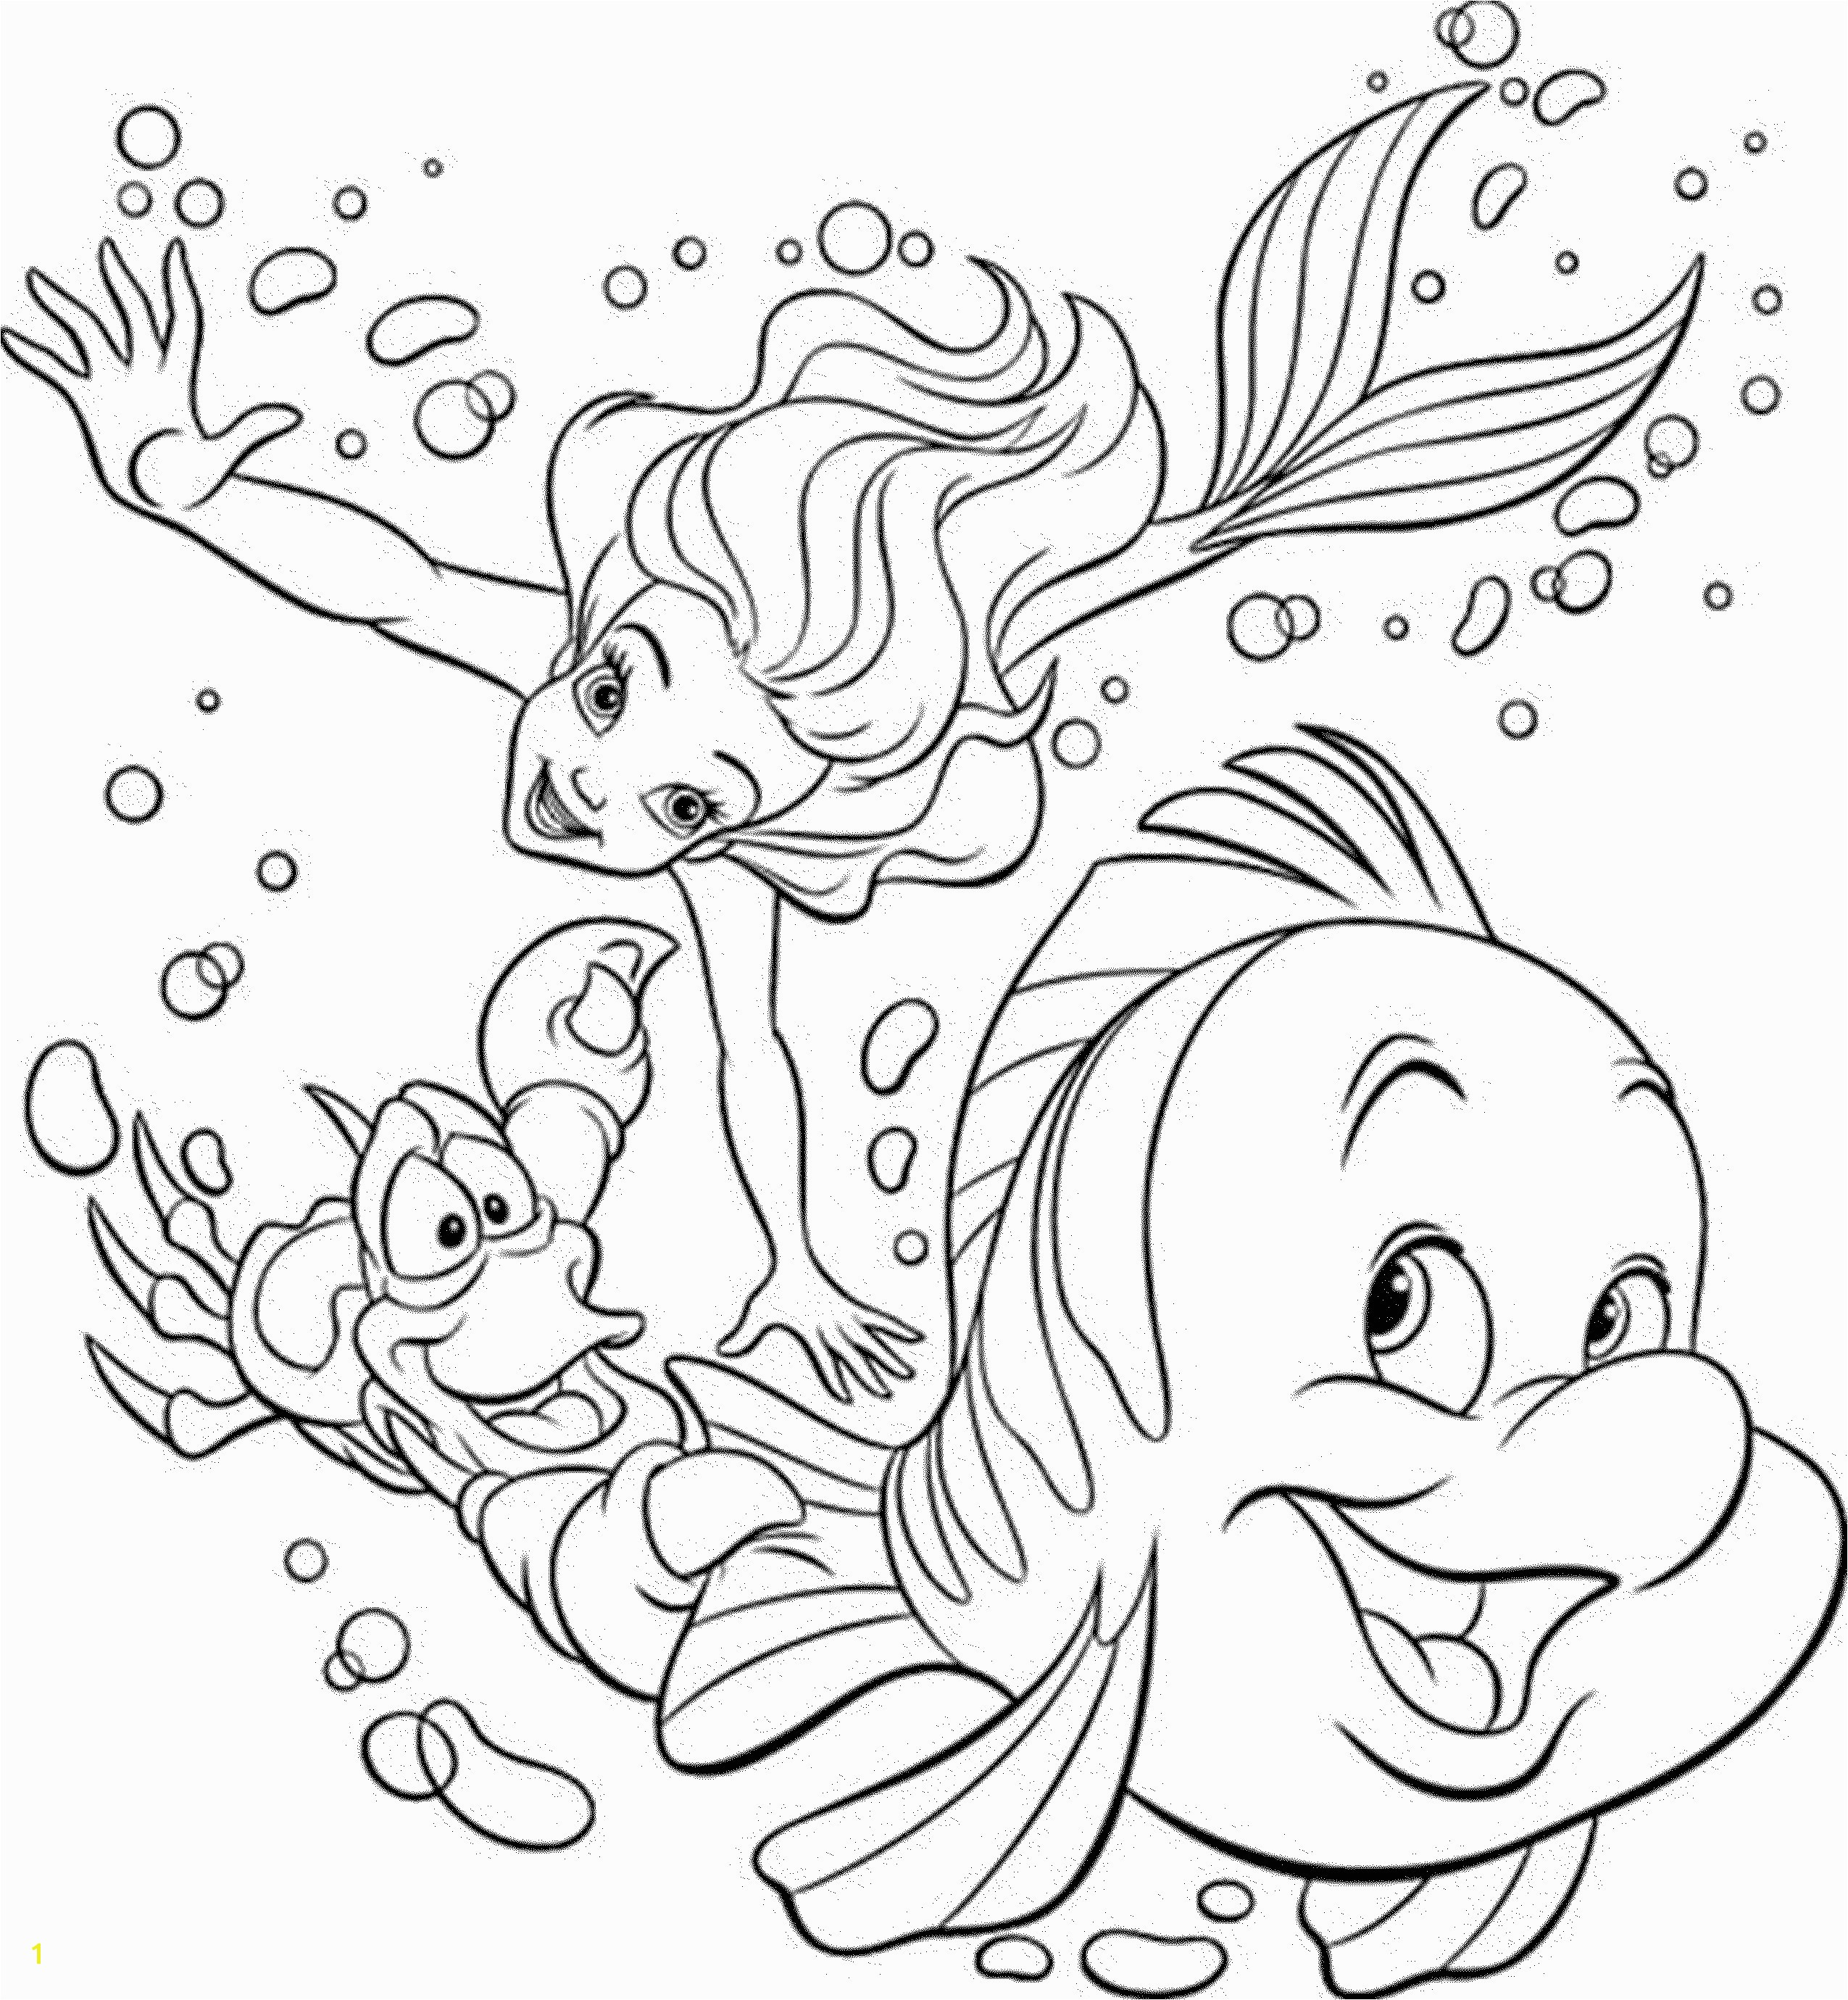 Printable Fish Coloring Pages Inspirational Math Coloring Pages Printable Vitlt Gallery Free Coloring Books Printable